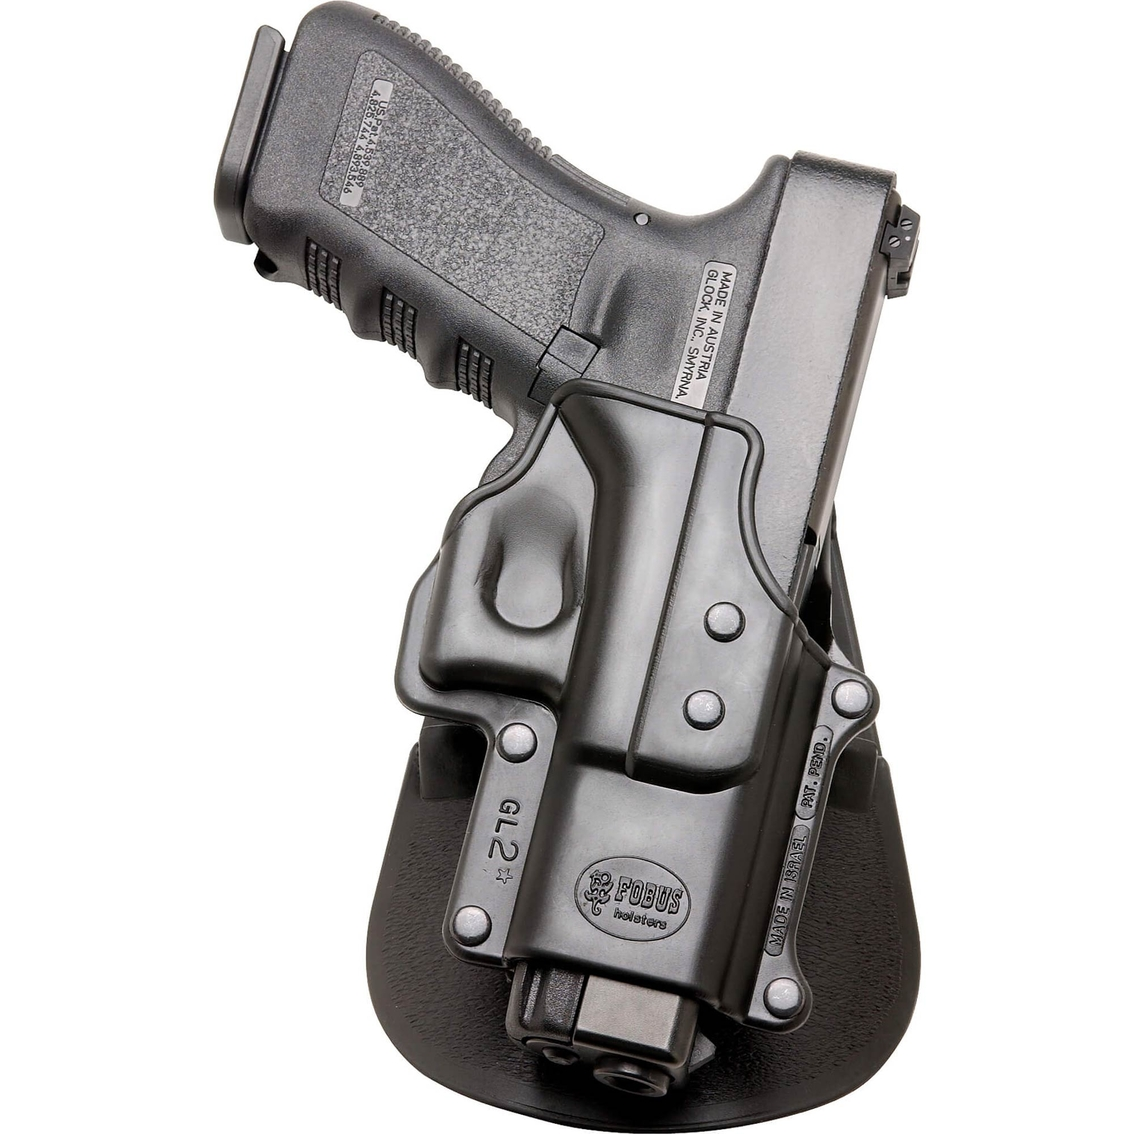 Fobus Paddle Holster Glock 20/21/37/38 Right Hand | Holsters